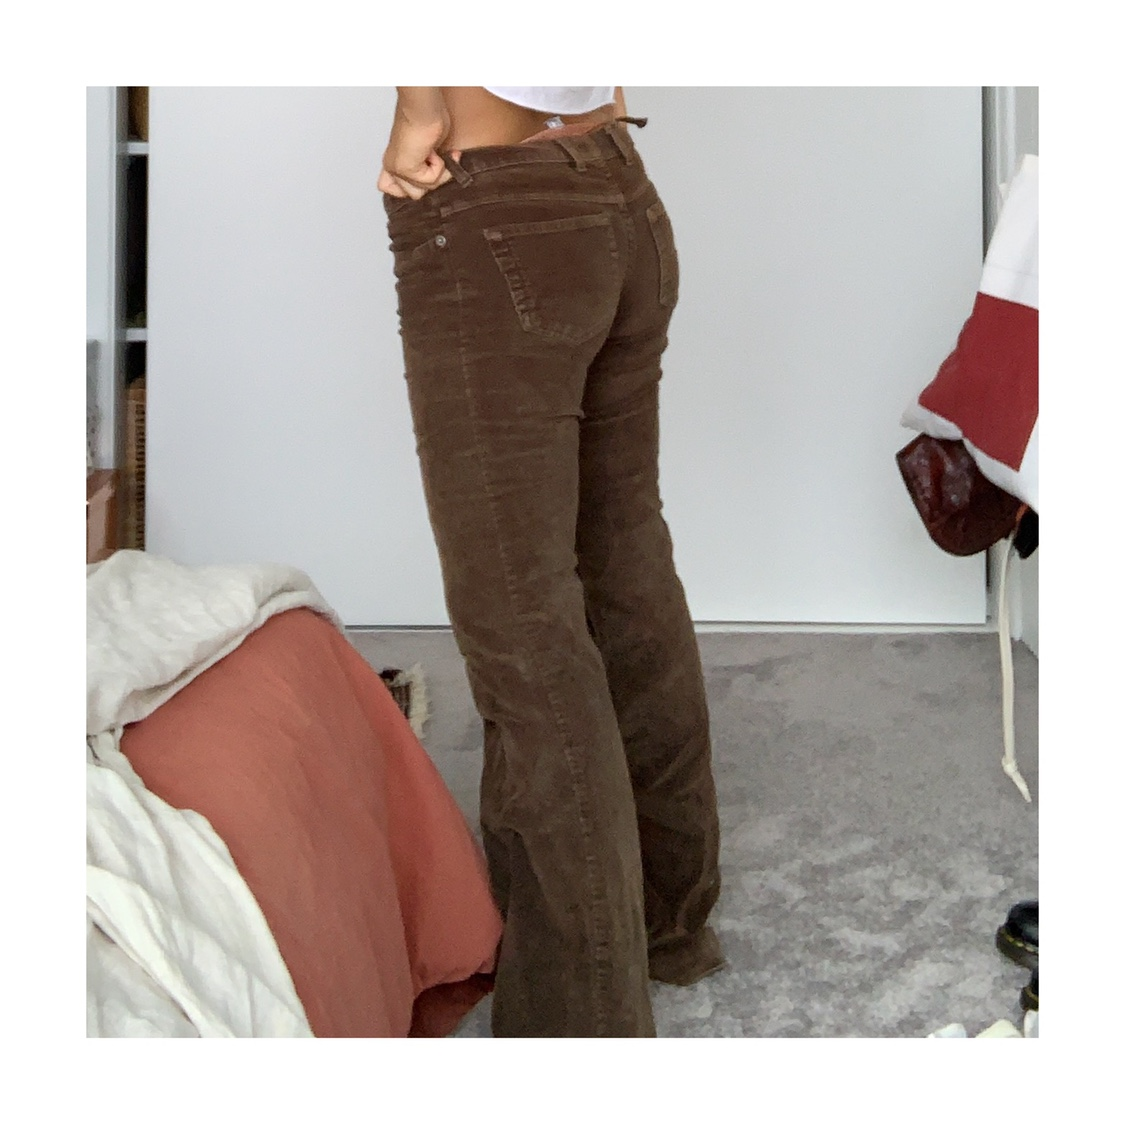 Sass And Bide Corduroy Flared Jeans It Says Size 8 Depop